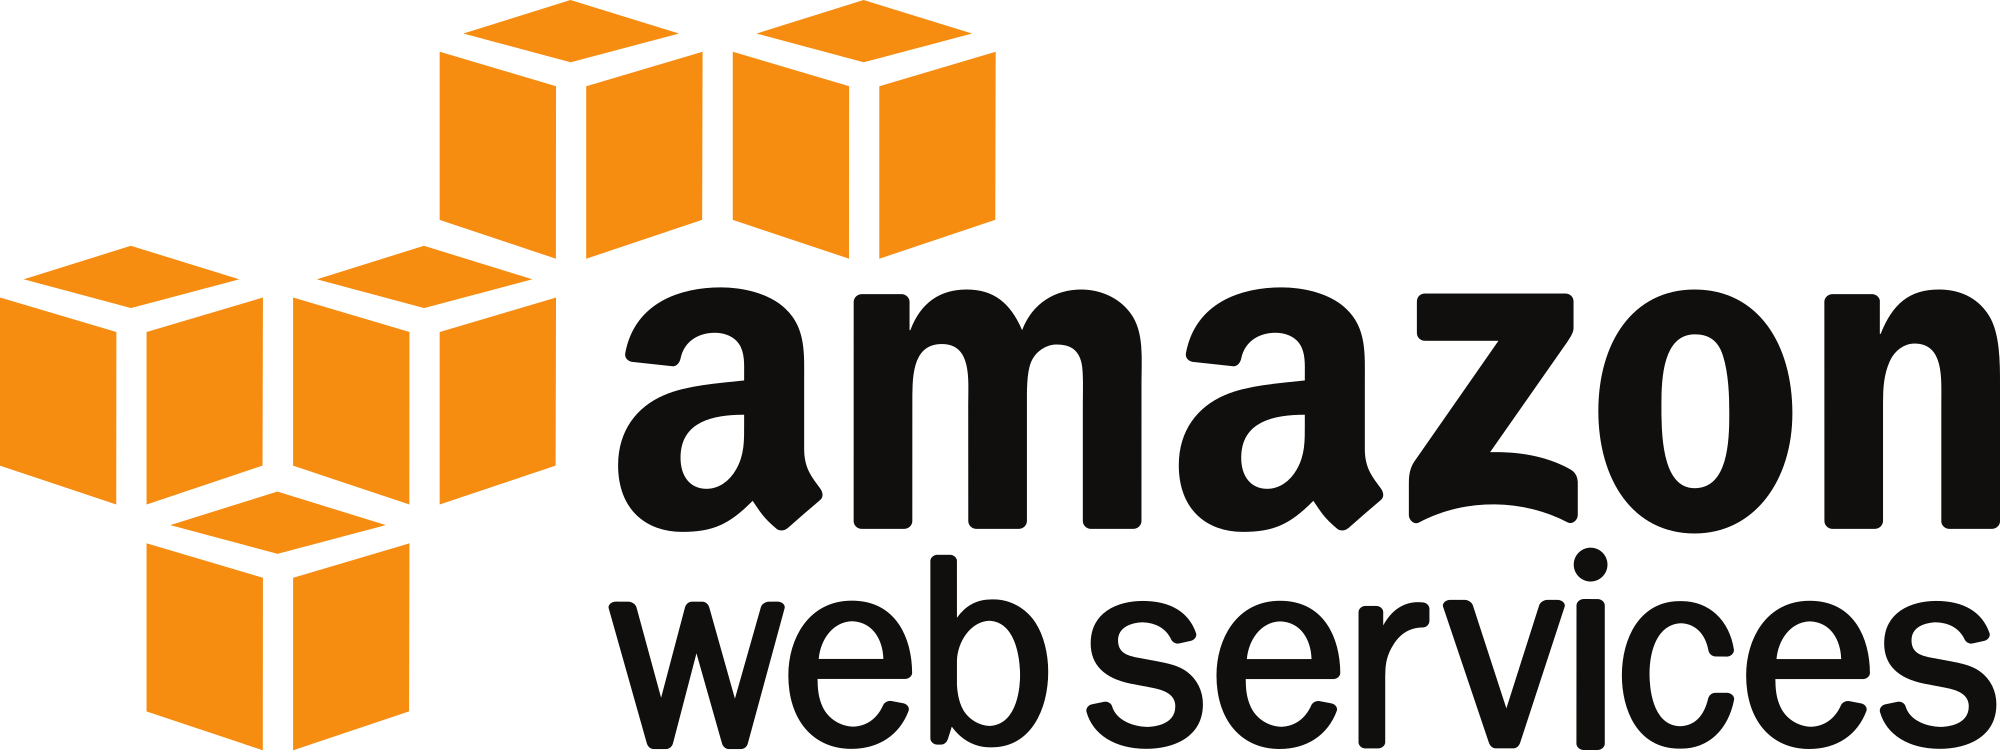 Dezvoltare aplicatii Amazon Web Servers